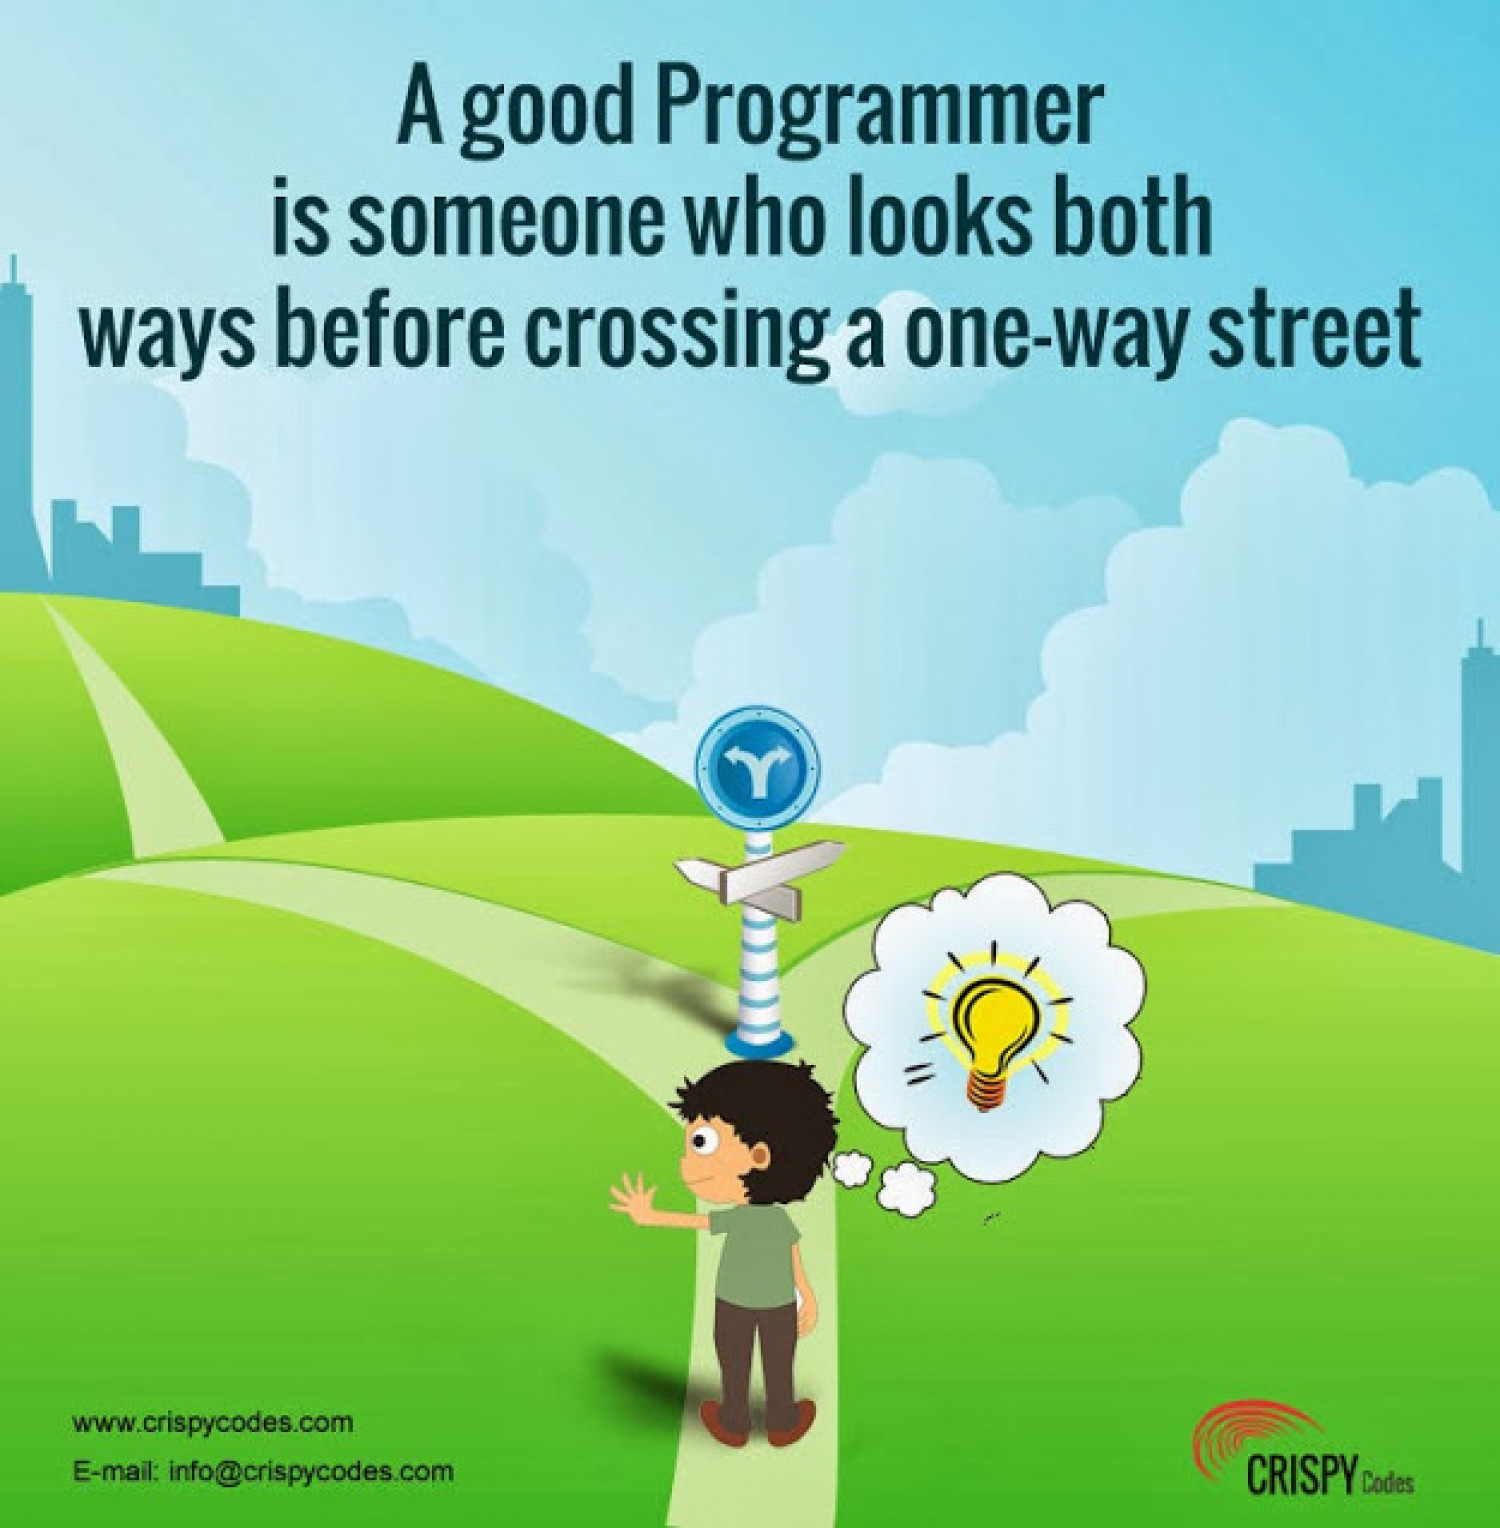 Good Programmer Who Looks on Both Side Infographic